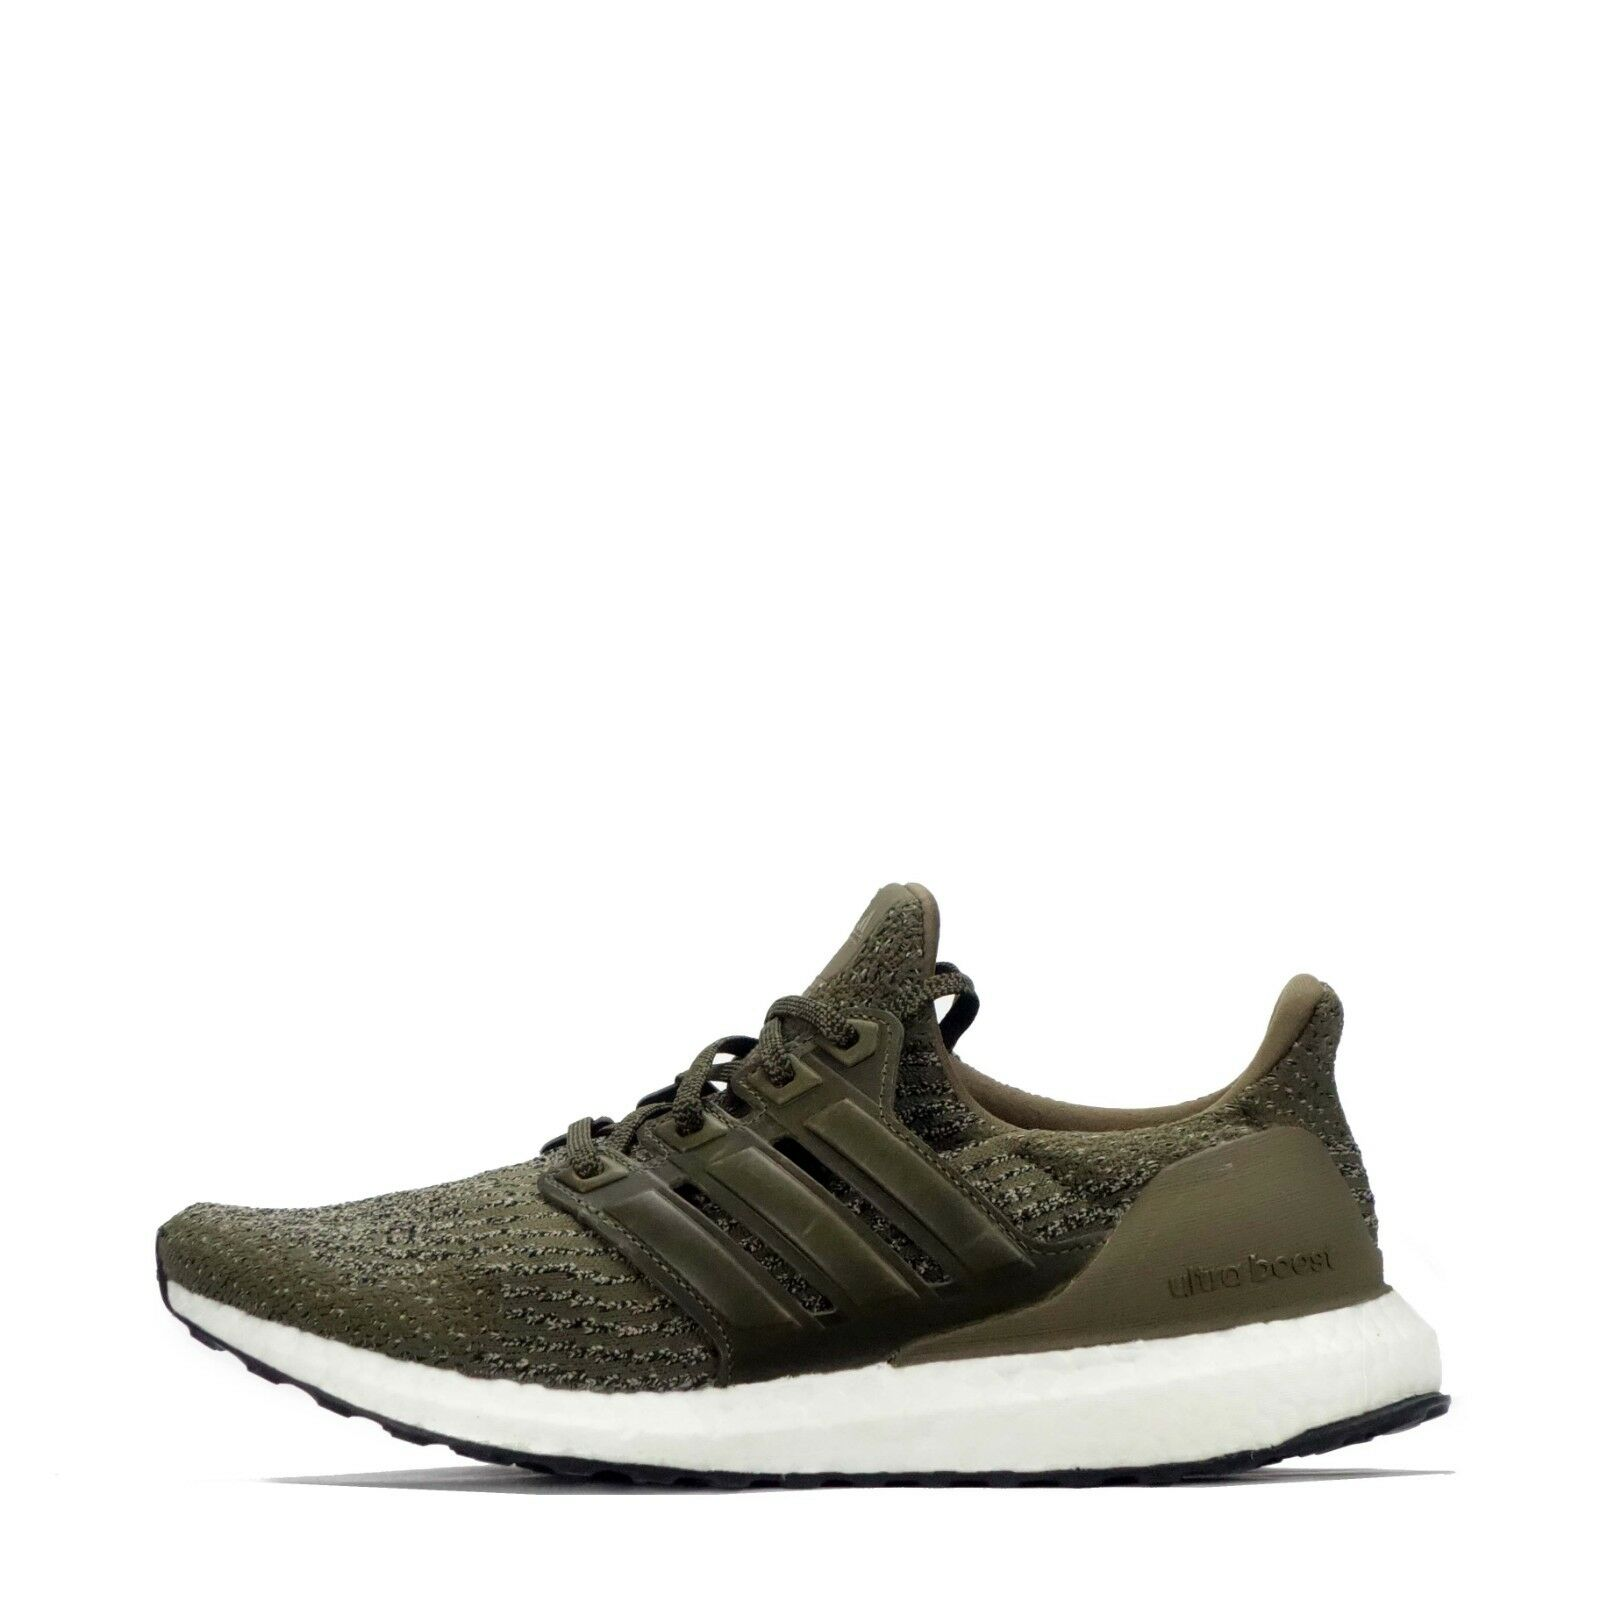 Adidas Ultra AugHommestation Homme Chaussures Course, Trace Olive